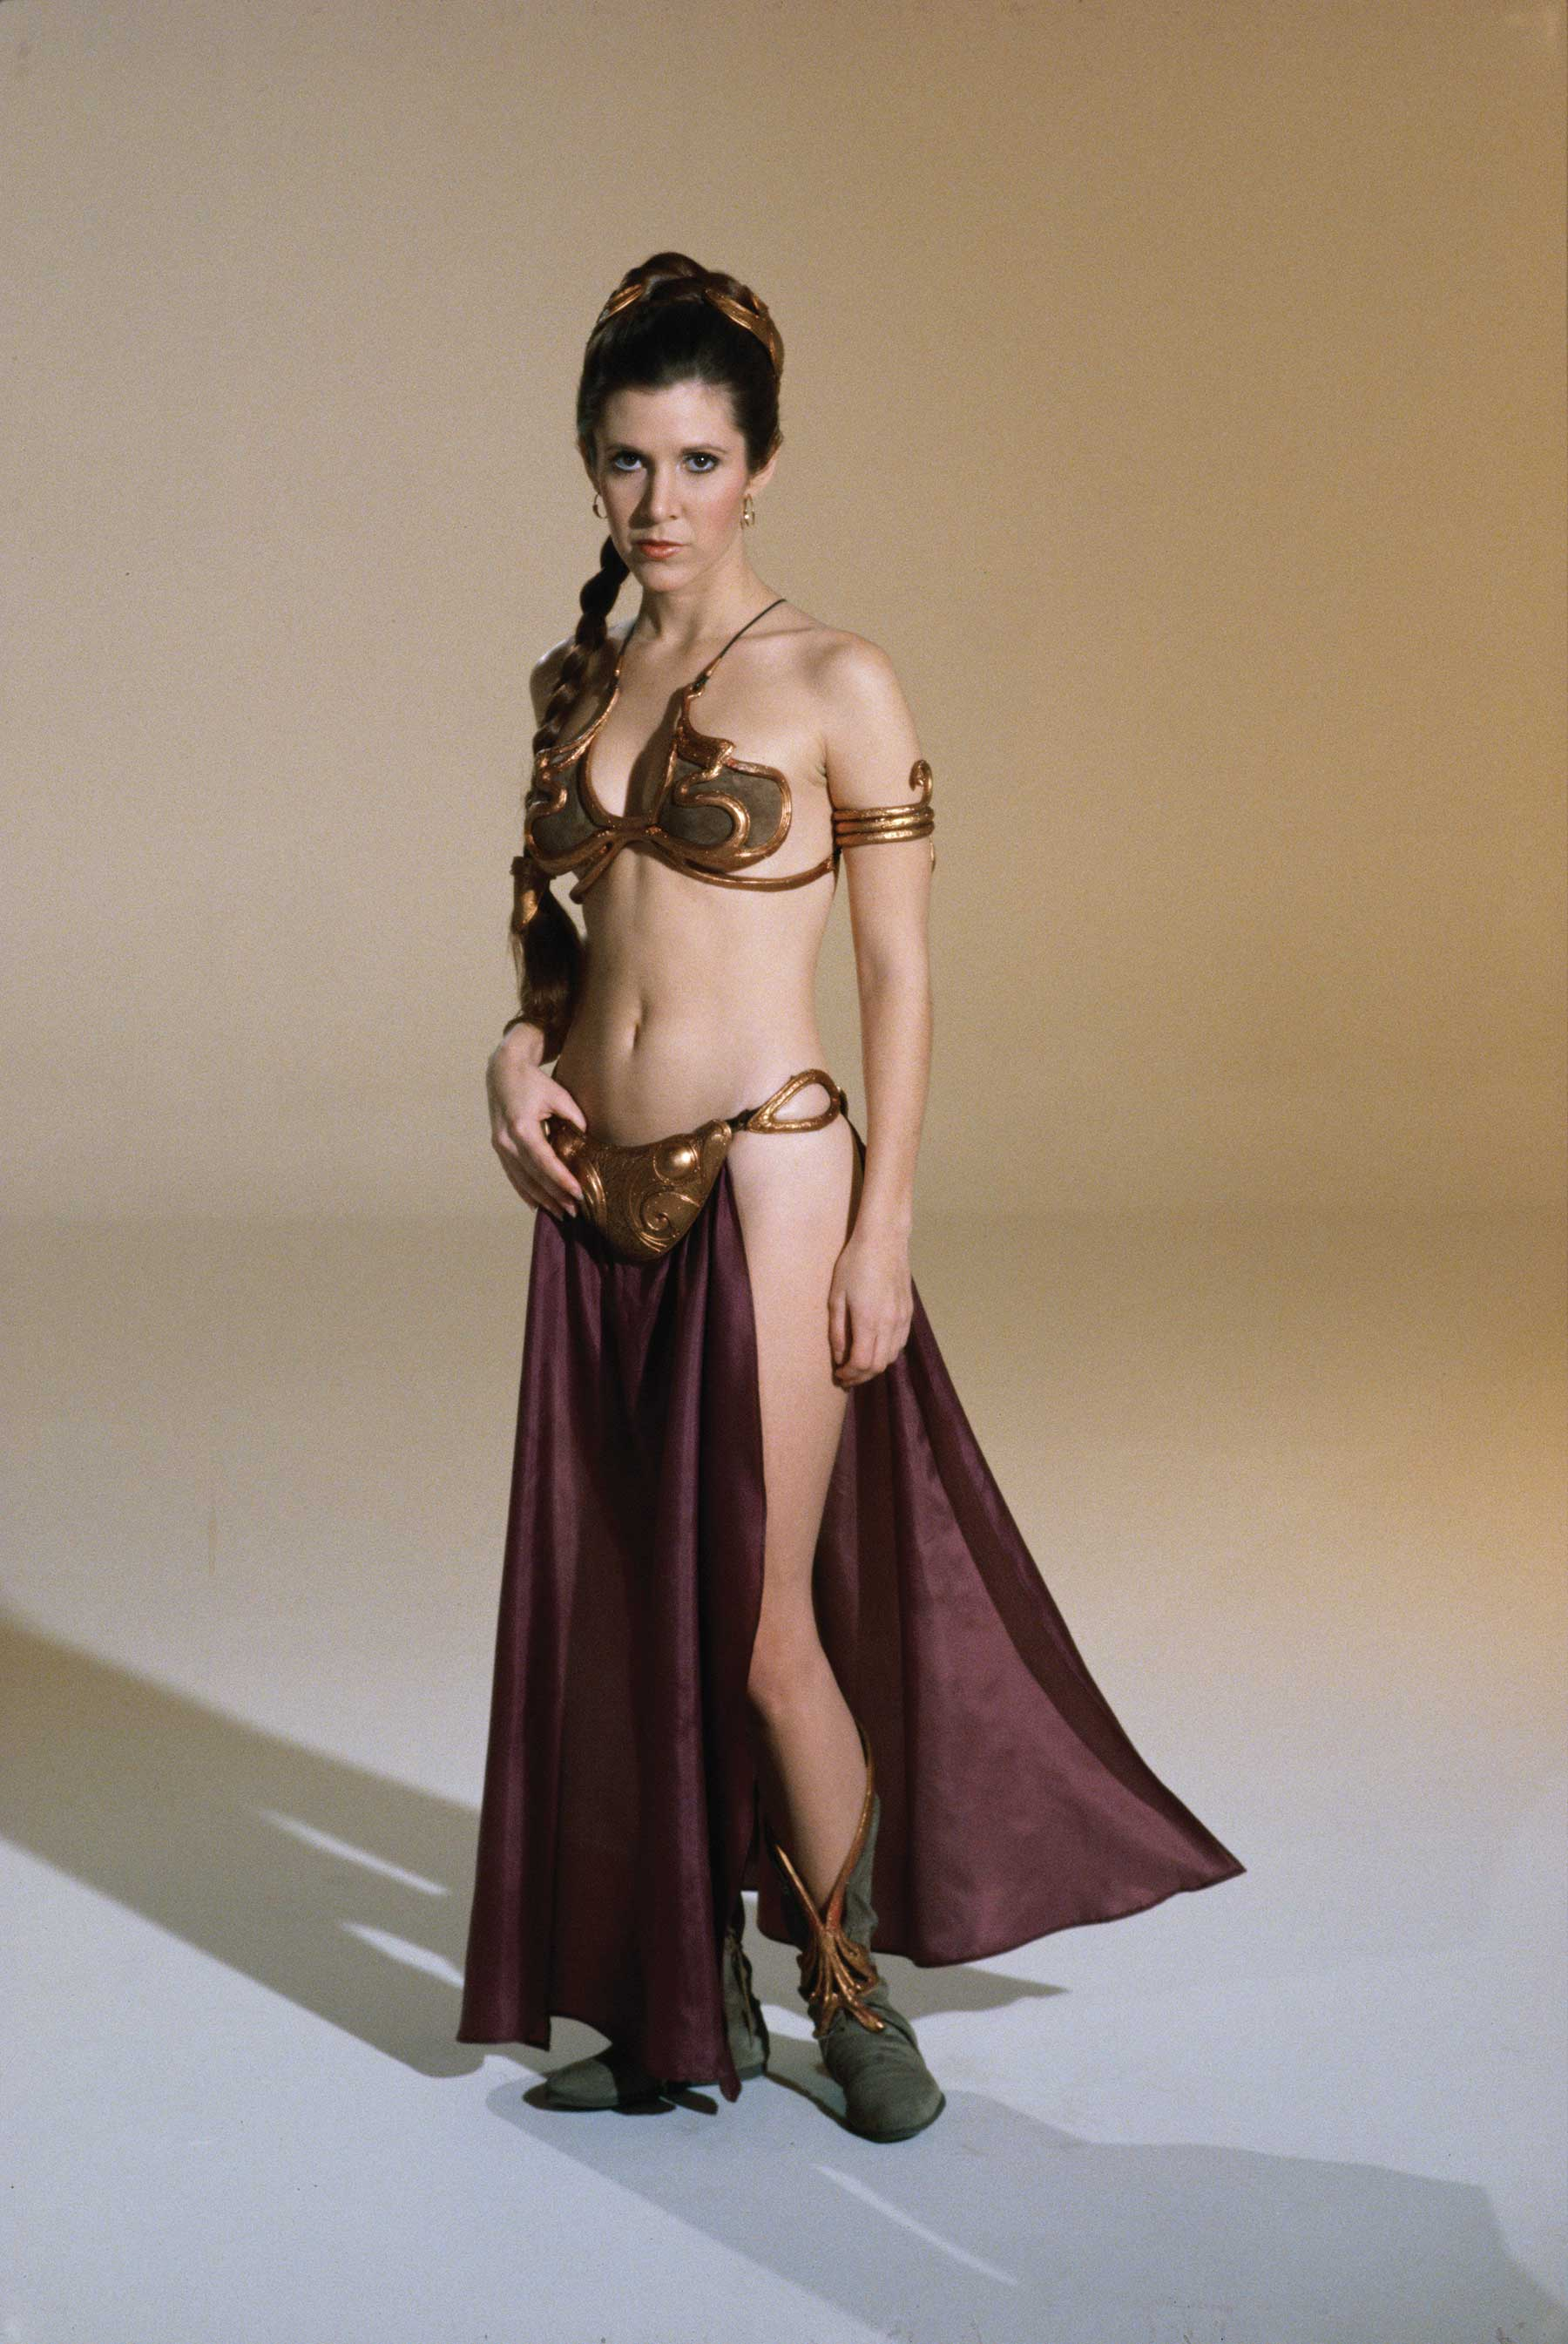 Very valuable carrie fisher princess leia slave opinion